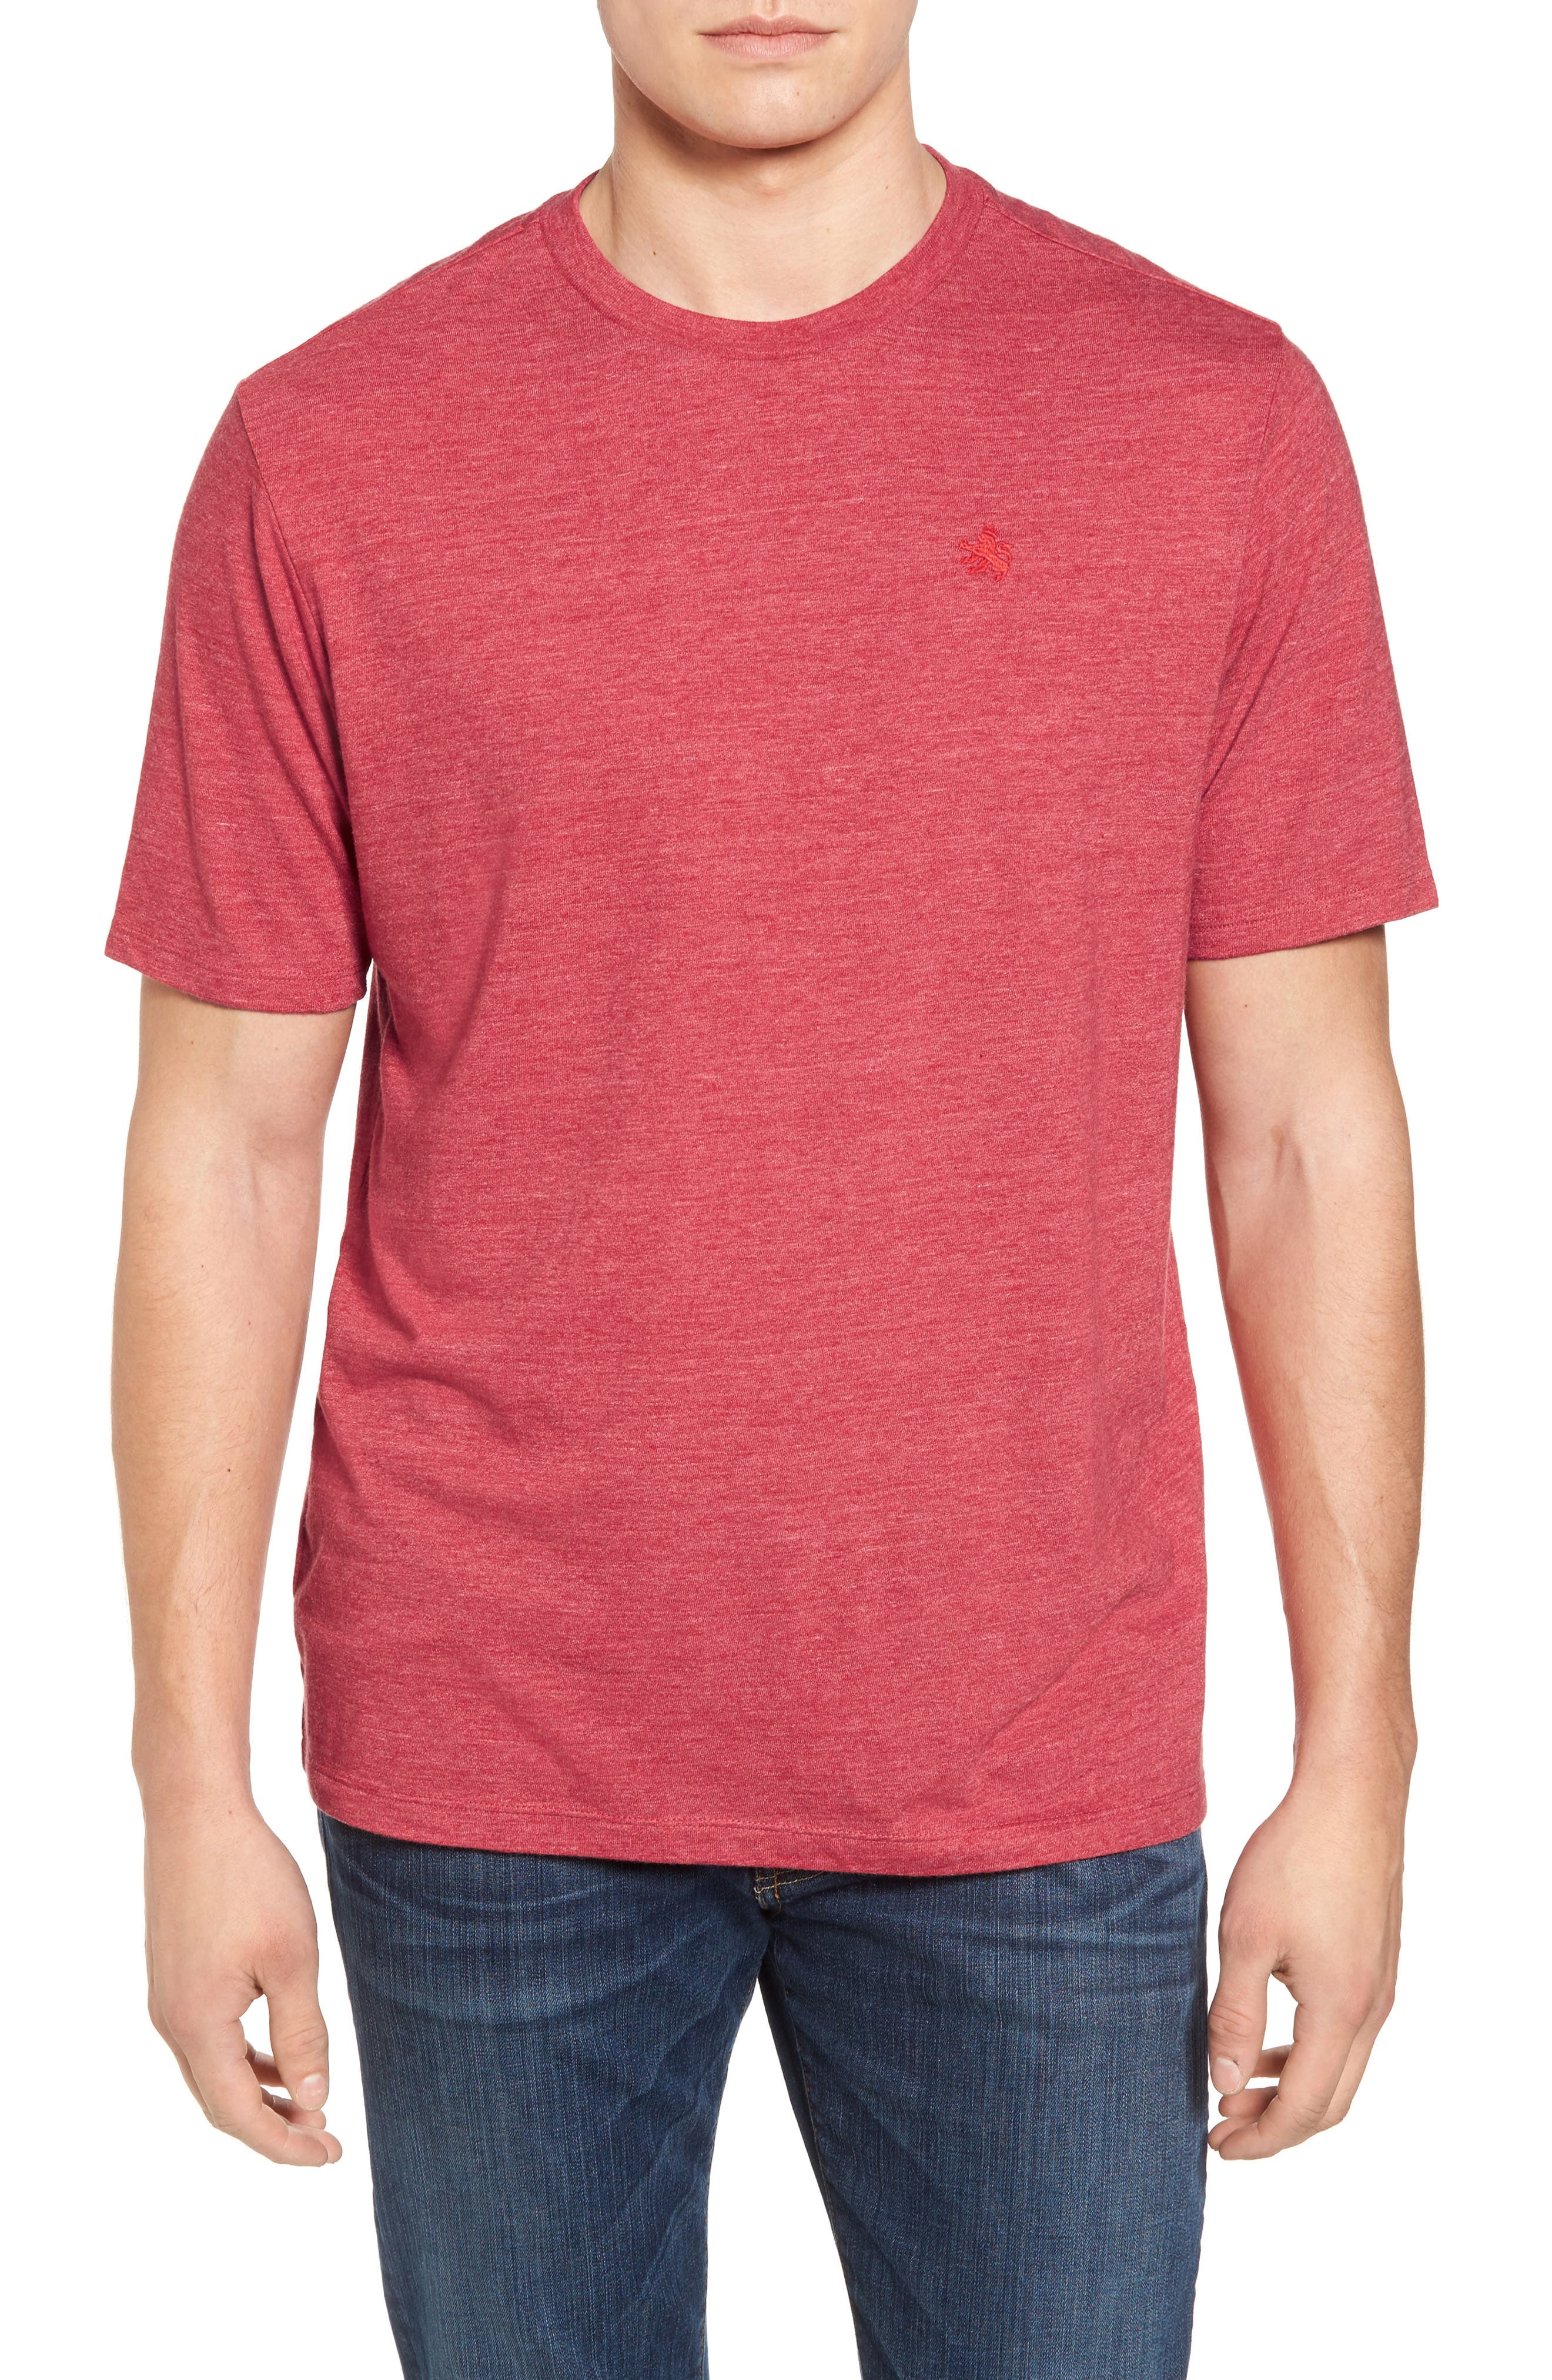 For the Good Life Graphic T-Shirt,                         Main,                         color, Red Heat